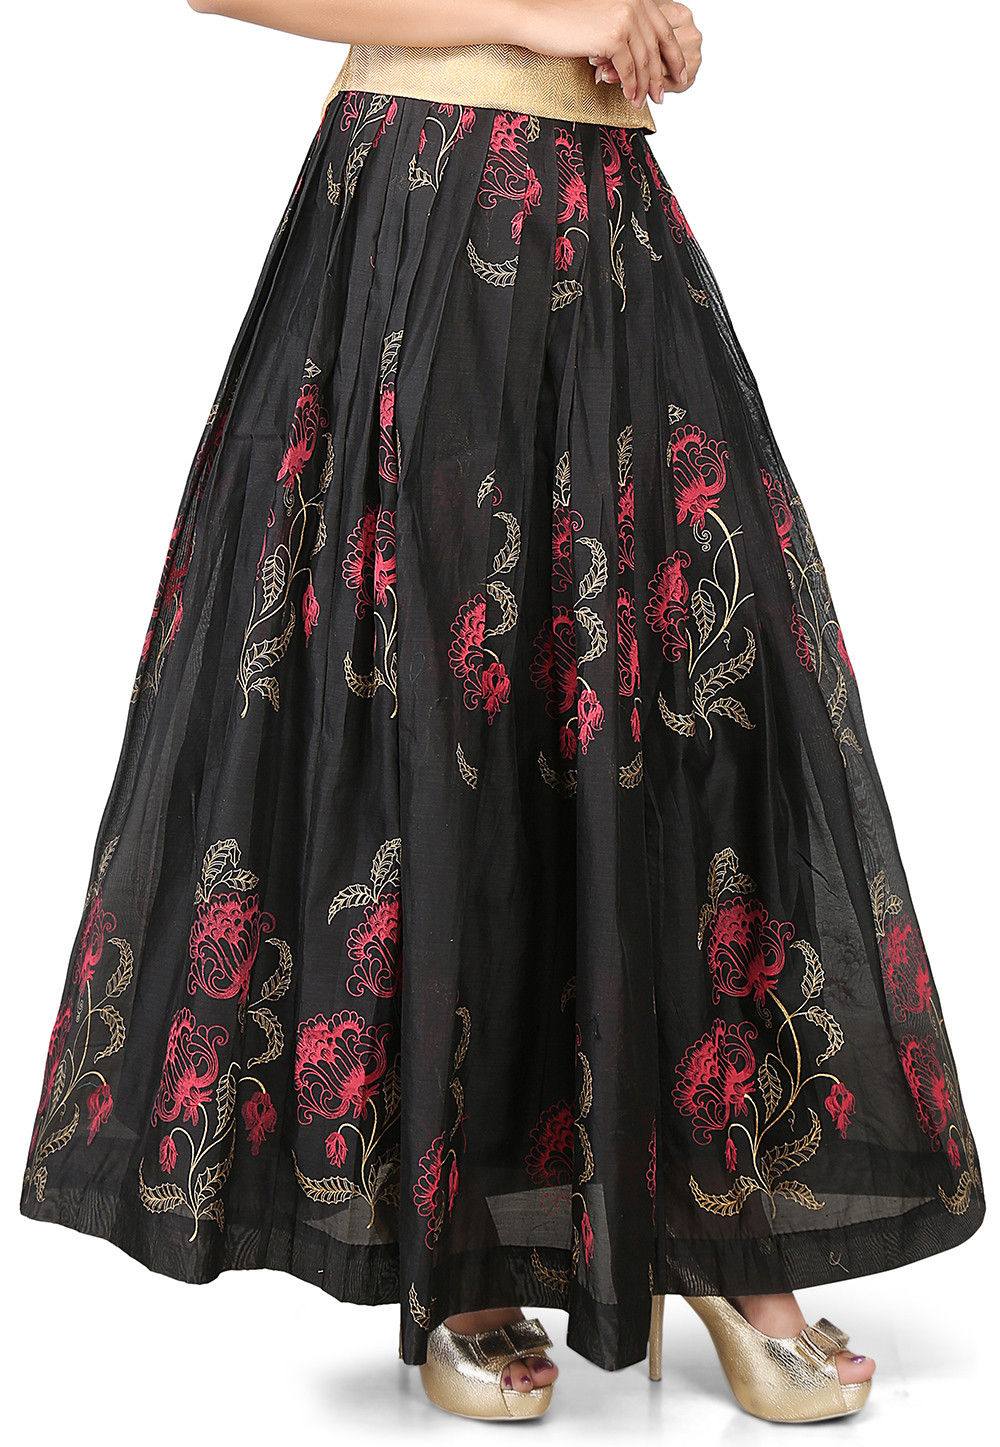 Floral Printed Chanderi Silk Long Skirt In Black Thu510